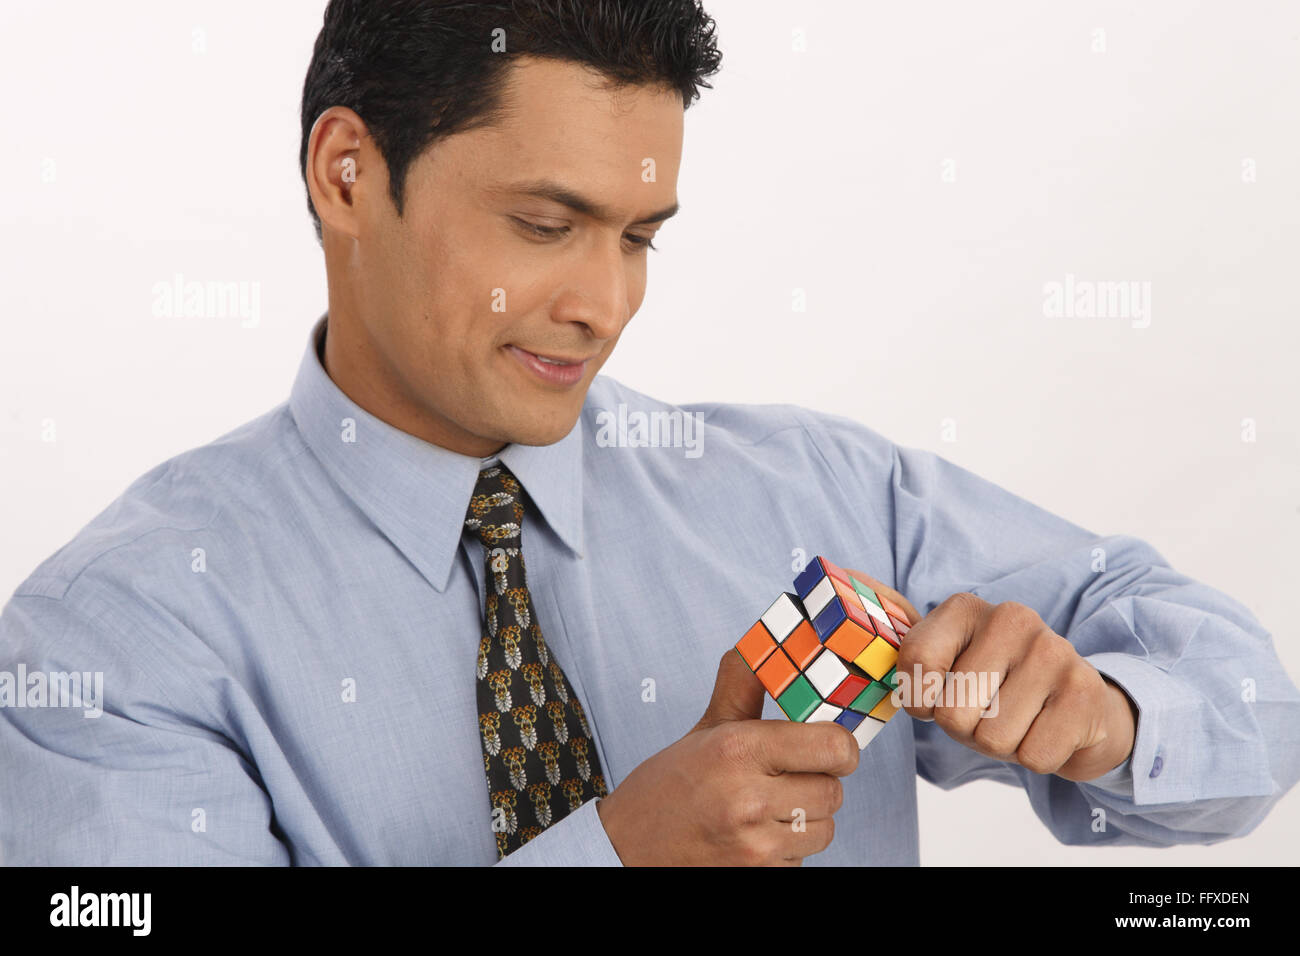 Businessman holding Rubik cube trying to solve puzzle MR#703T - Stock Image